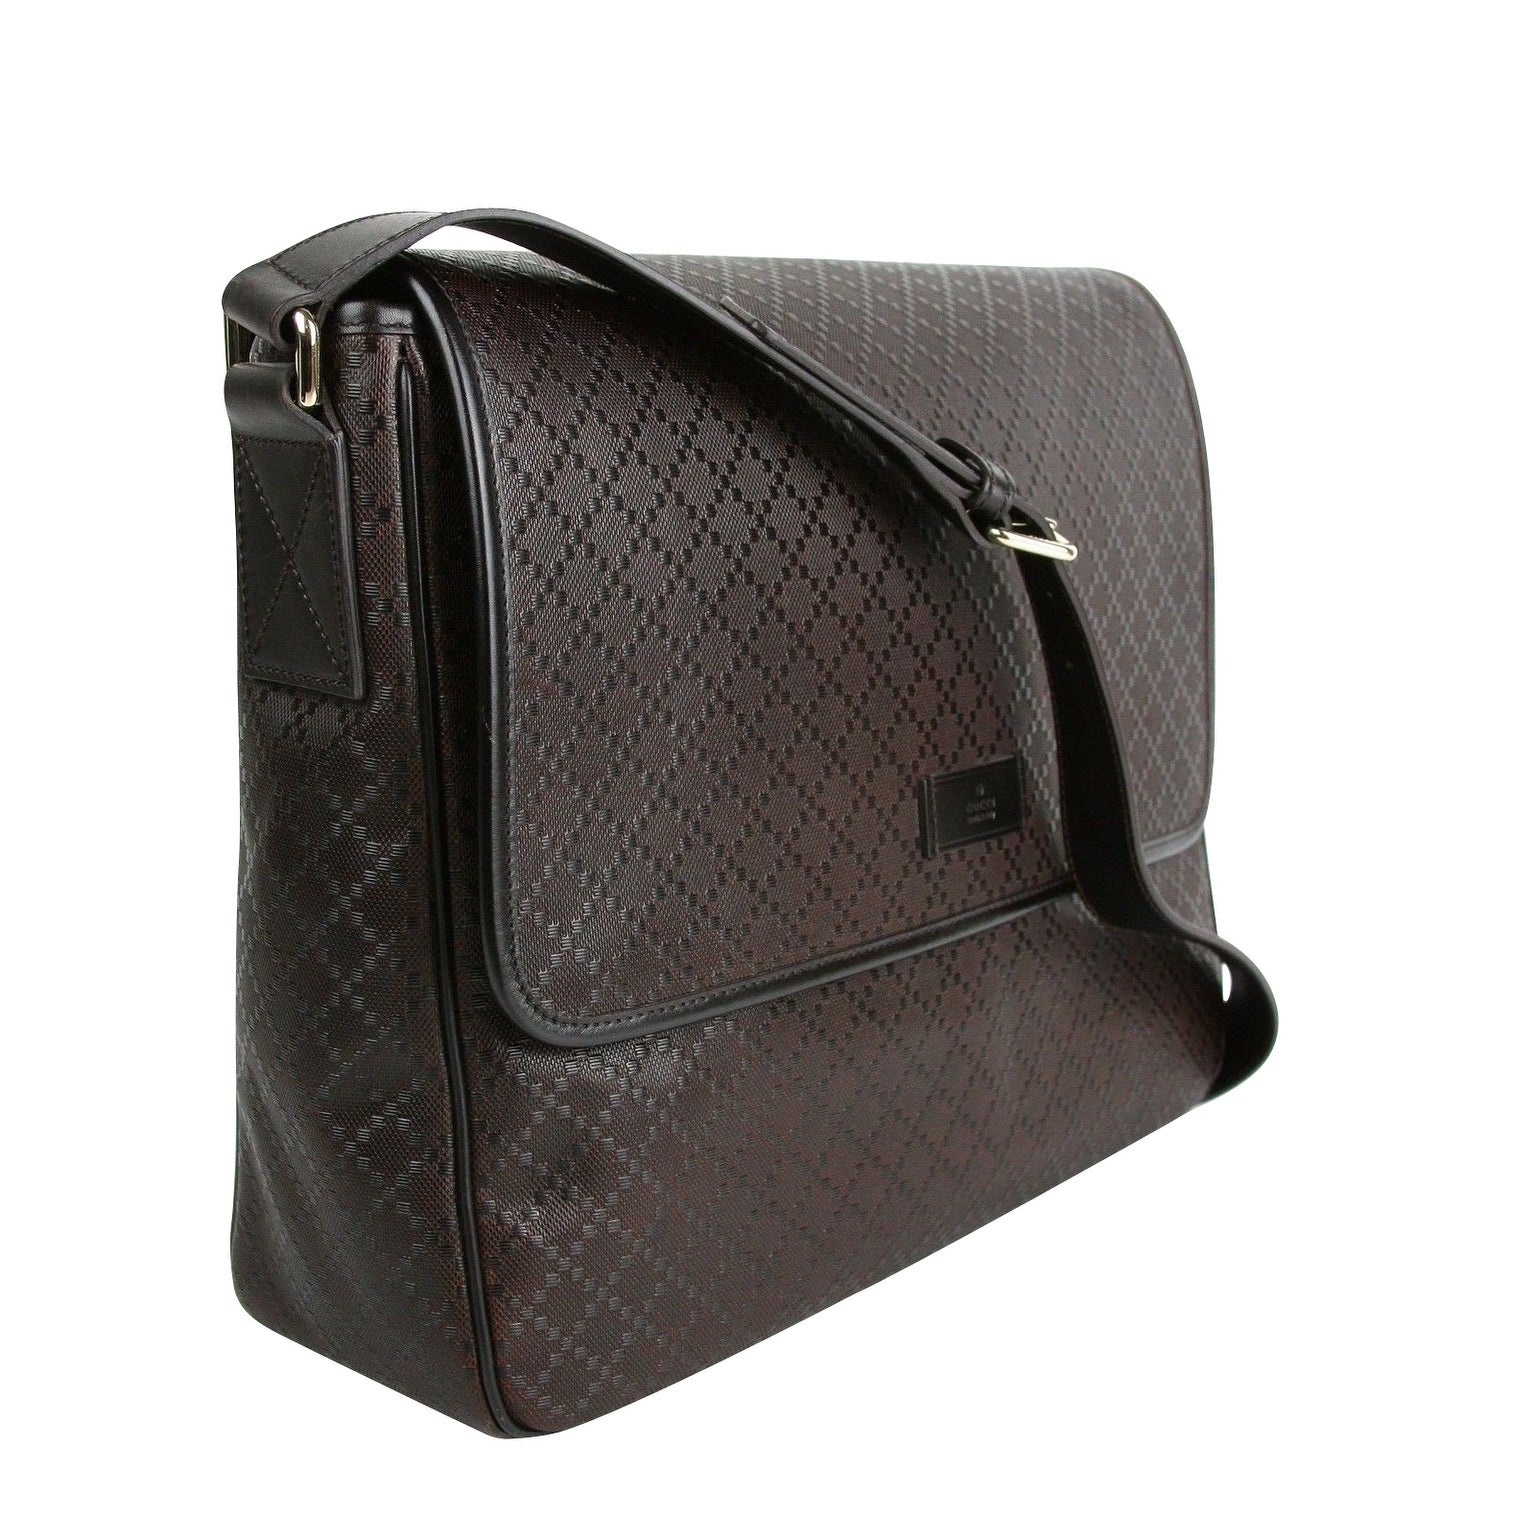 10591cc48 Shop Gucci Men's Hilary Lux Dark Brown Diamante Leather Messenger Bag  223665 2044 - One size - Free Shipping Today - Overstock - 27603112